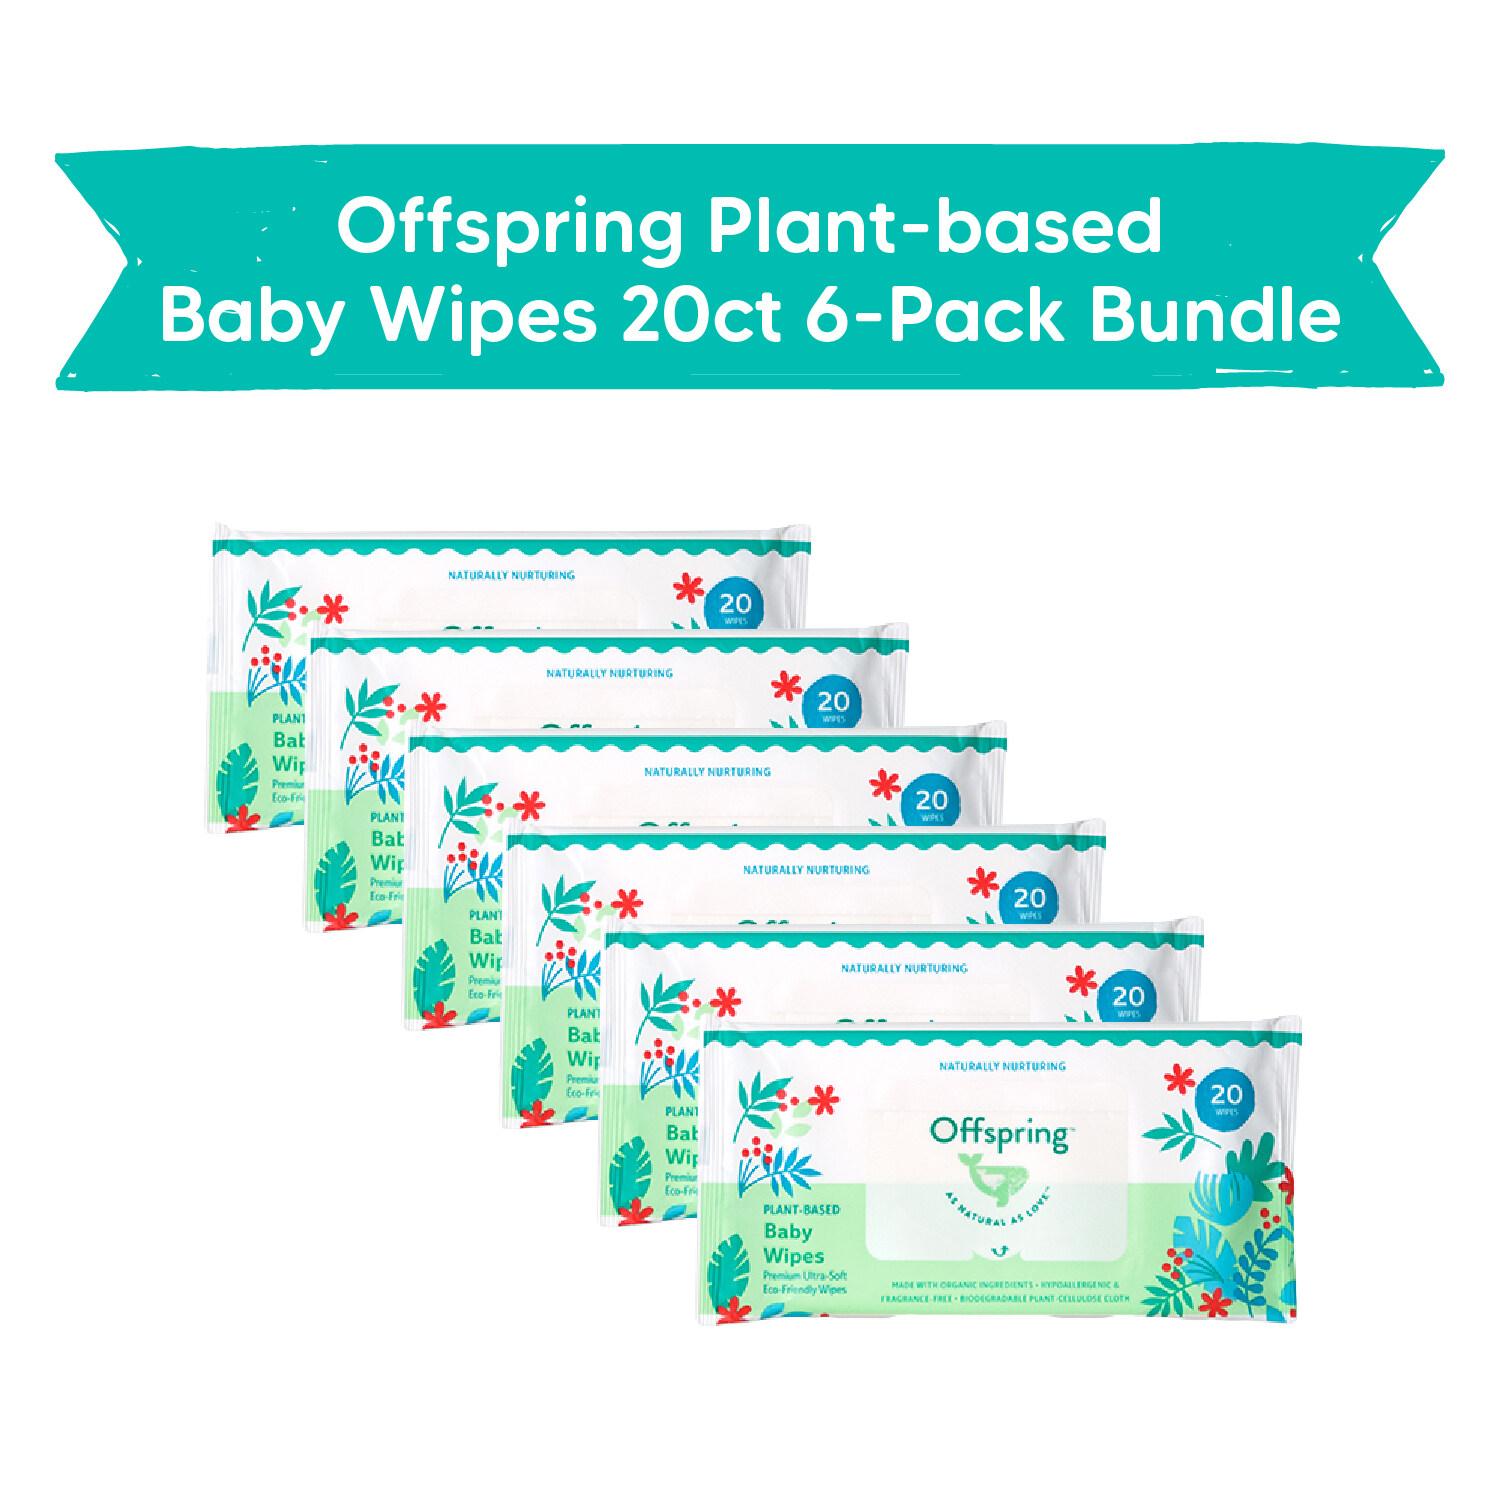 Offspring Plant-based Baby Wipes 20ct 6-Pack Bundle